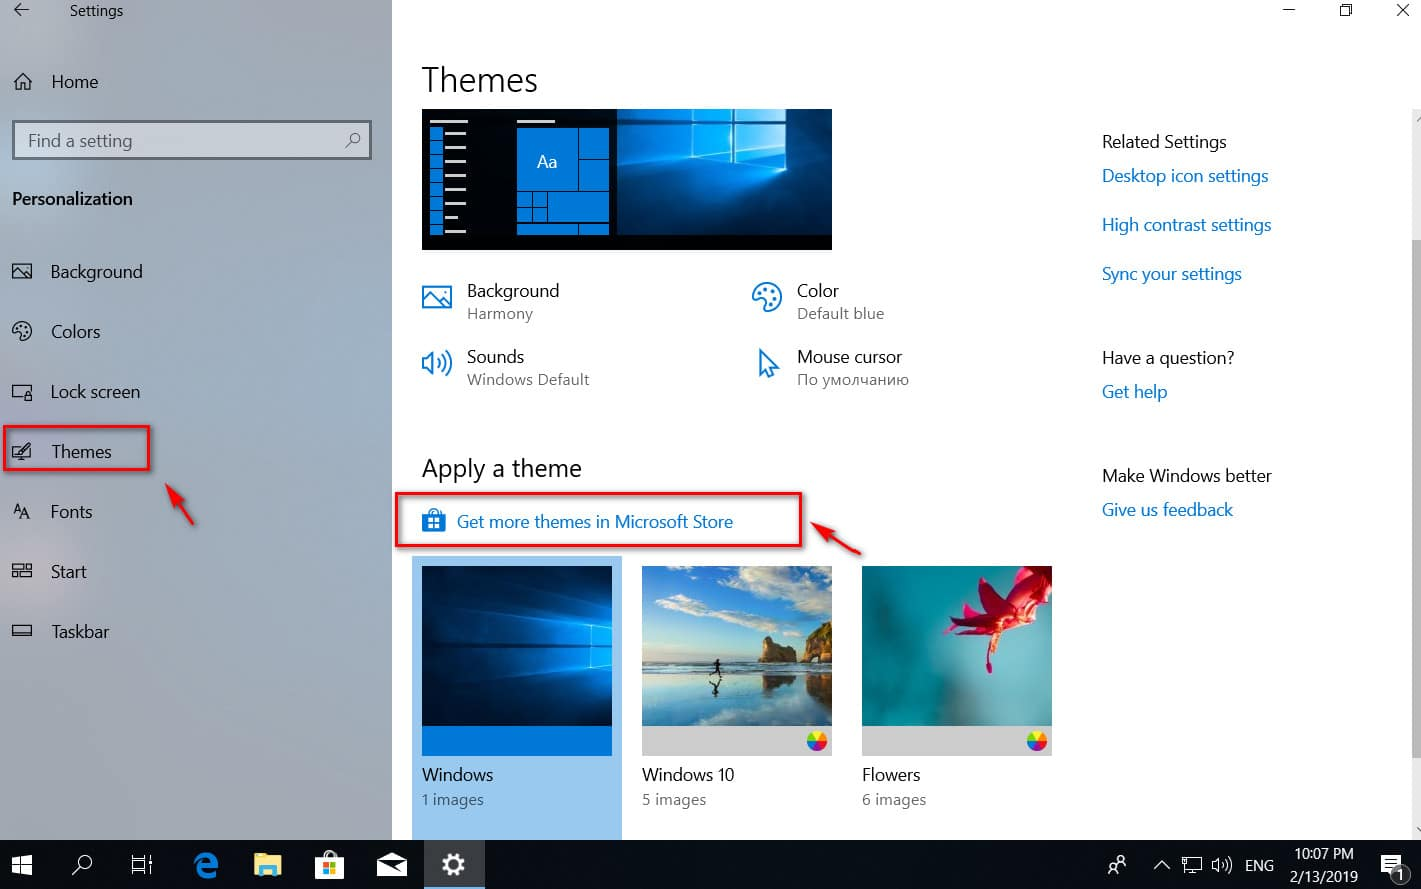 How to install the theme in windows 10 from the store